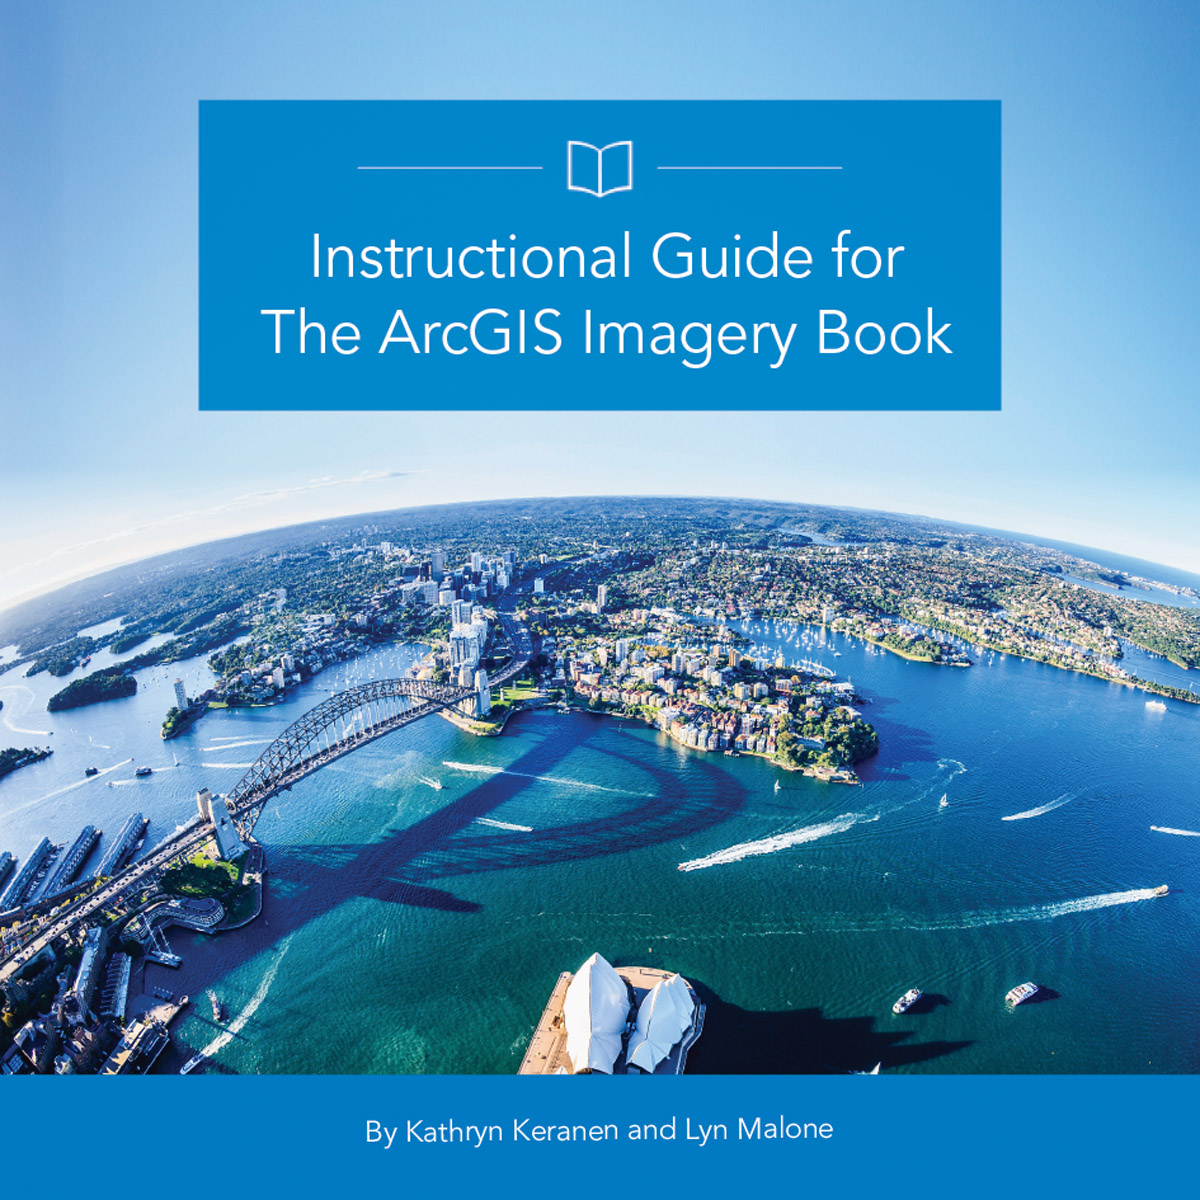 The Instructional Guide for The ArcGIS Imagery Book